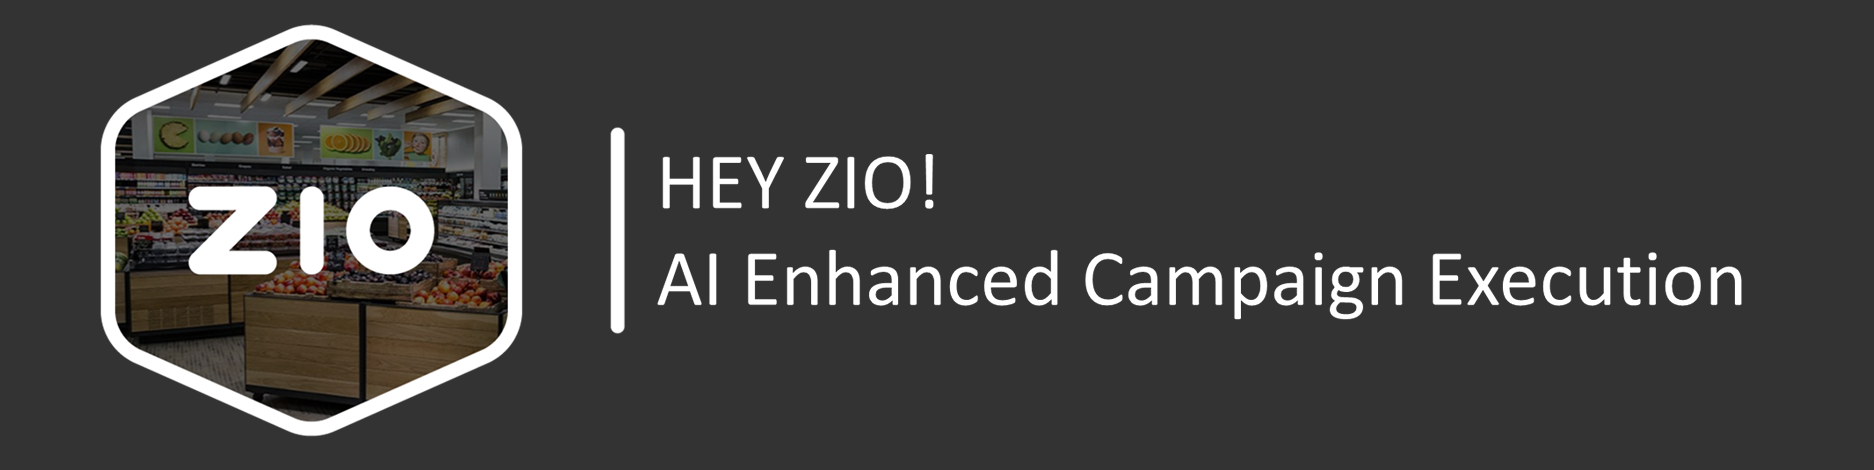 HEY ZIO - Your AI Enhanced, Big Data Driven, Virtual Marketing Assistant